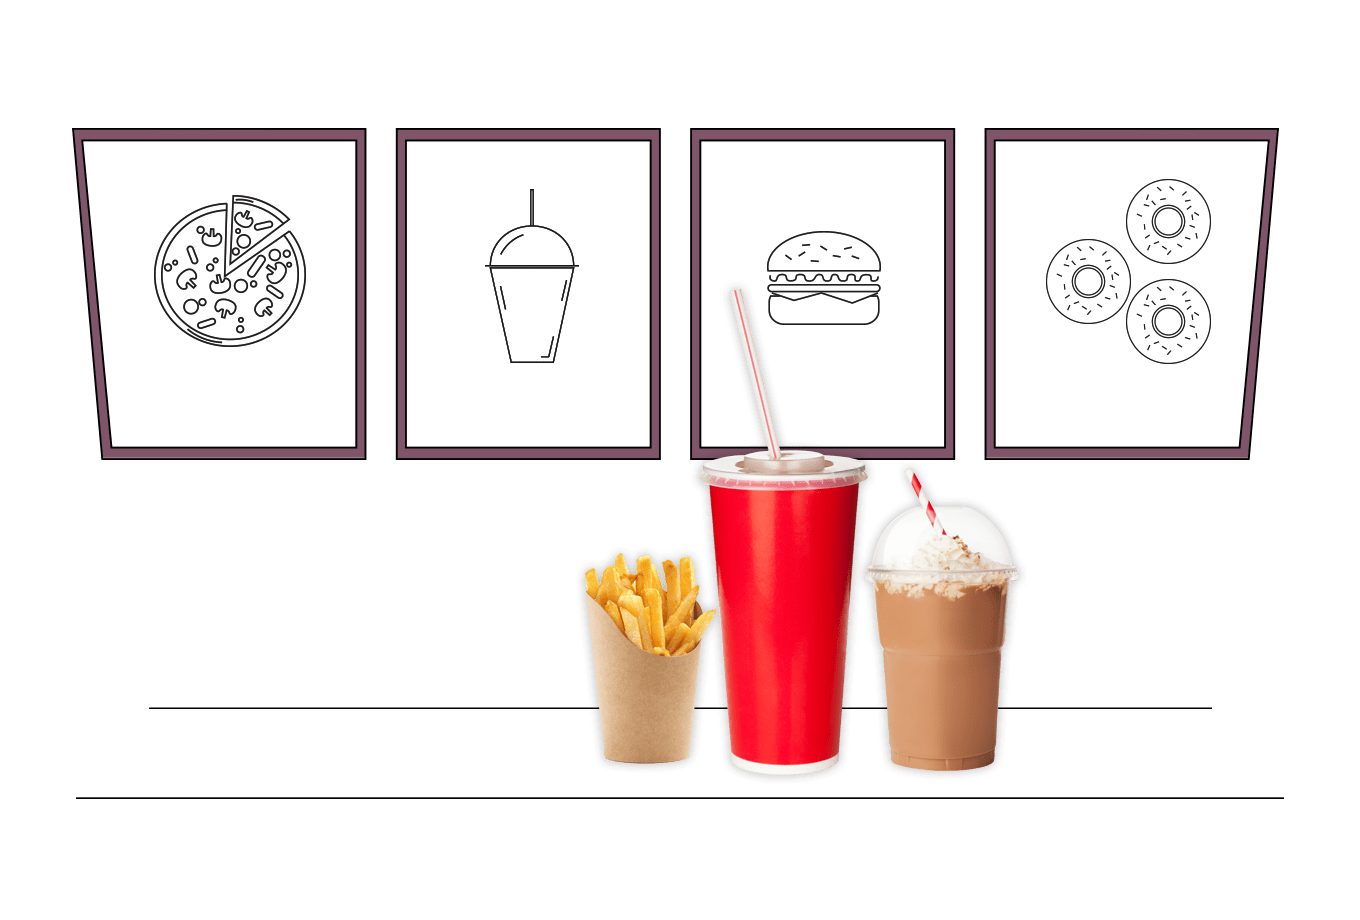 fast-food and takeaway outlets' insurance illustration of drink milkshake and fries